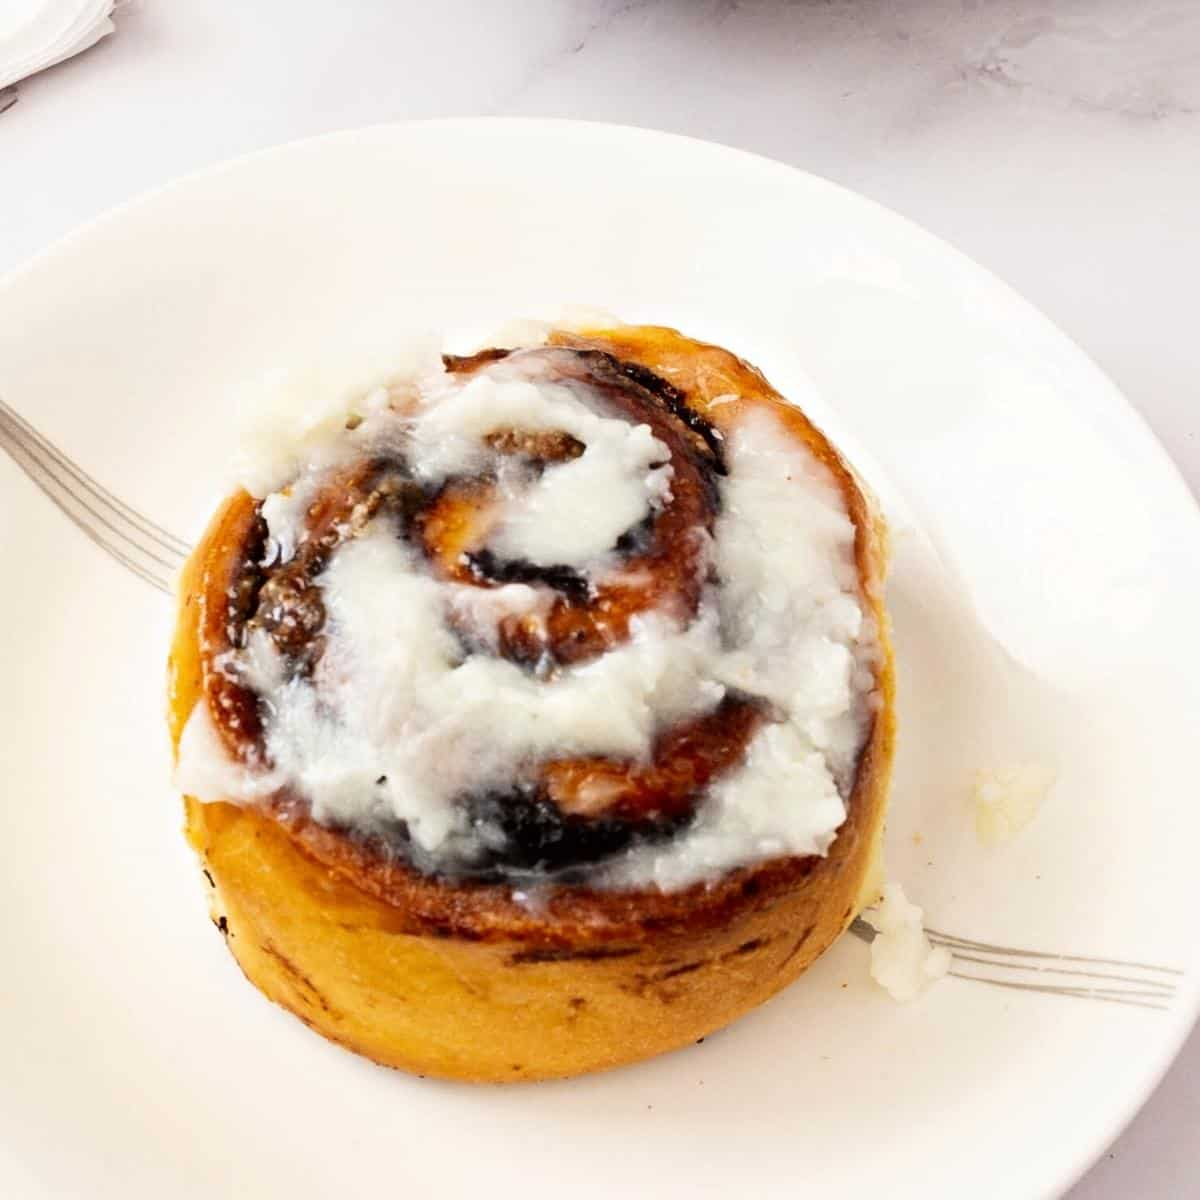 A plate with cream cheese glazed cinnamon roll.